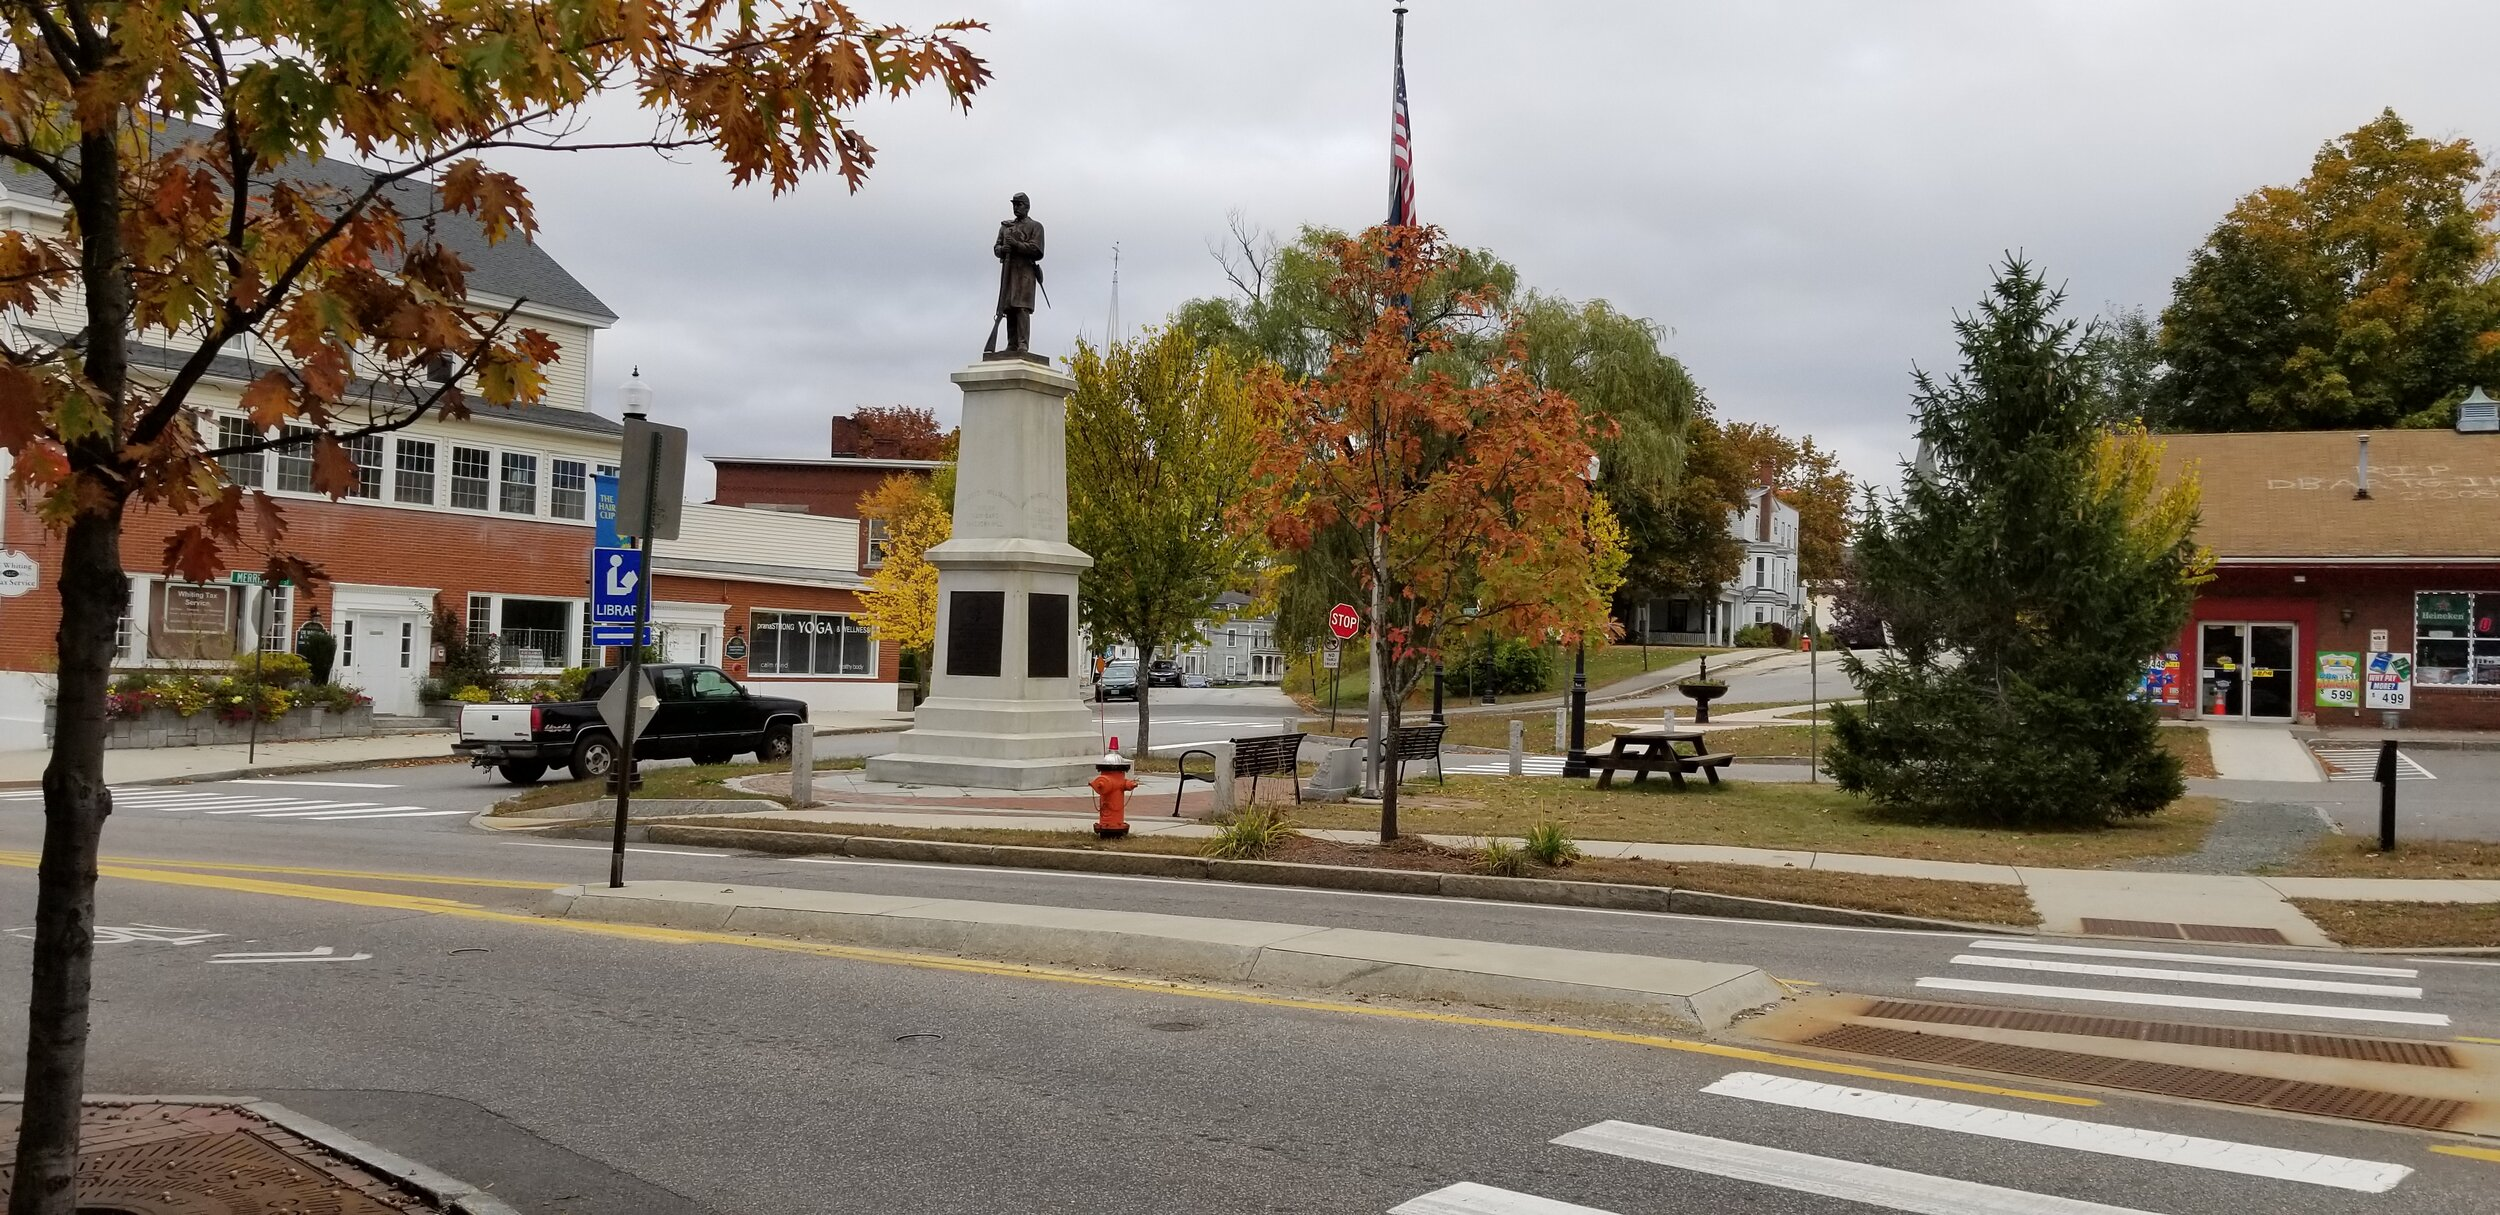 Mission - To involve citizens in enhancing the quality of life, protecting the historic character, and fostering economic vitality in Penacook Village.